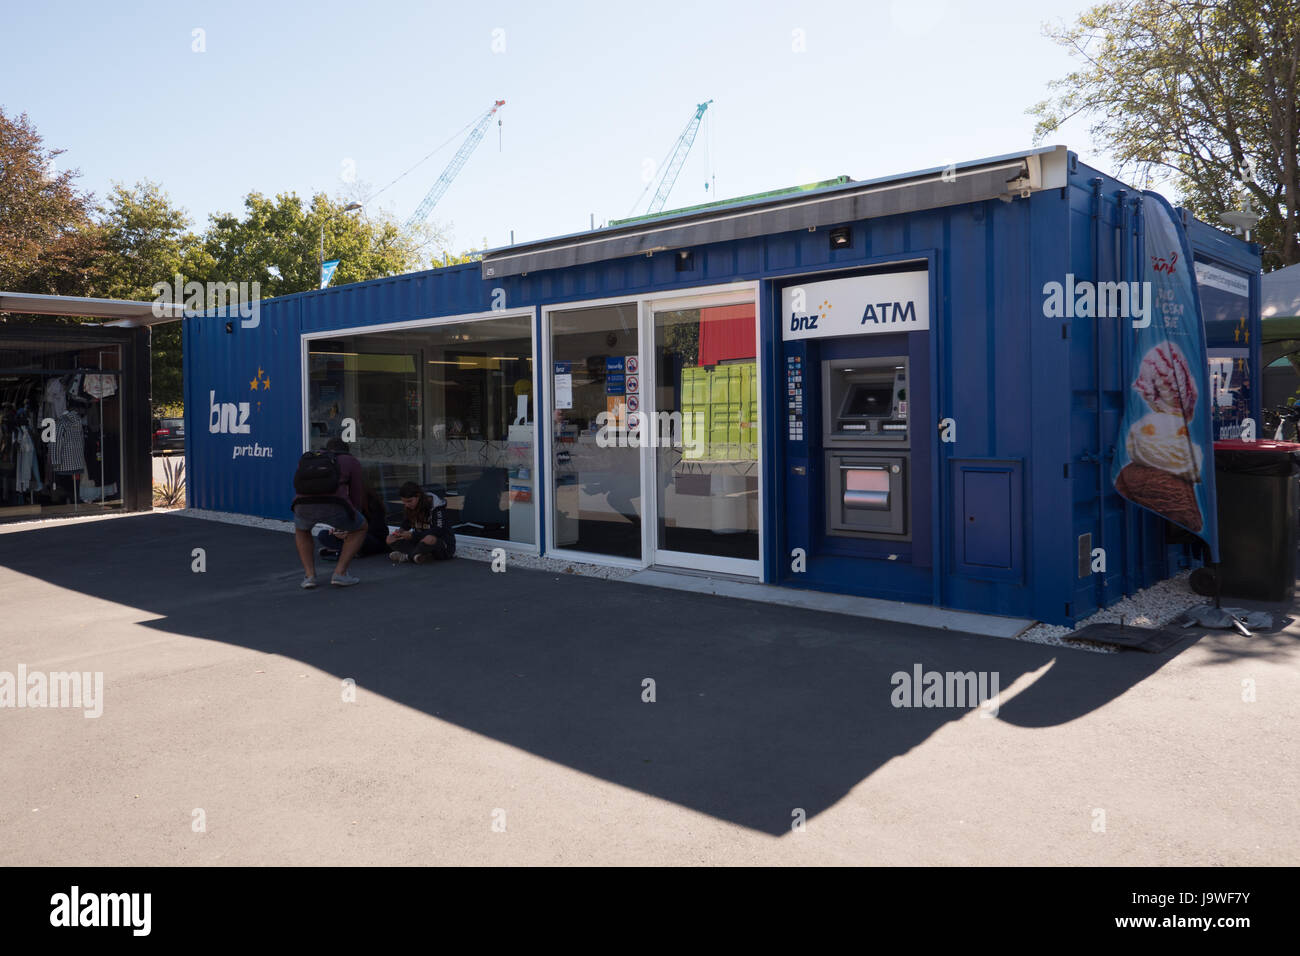 Old shipping containers used as temporary shops and buildings after the 2011 earthquake, Christchurch, New Zealand. - Stock Image